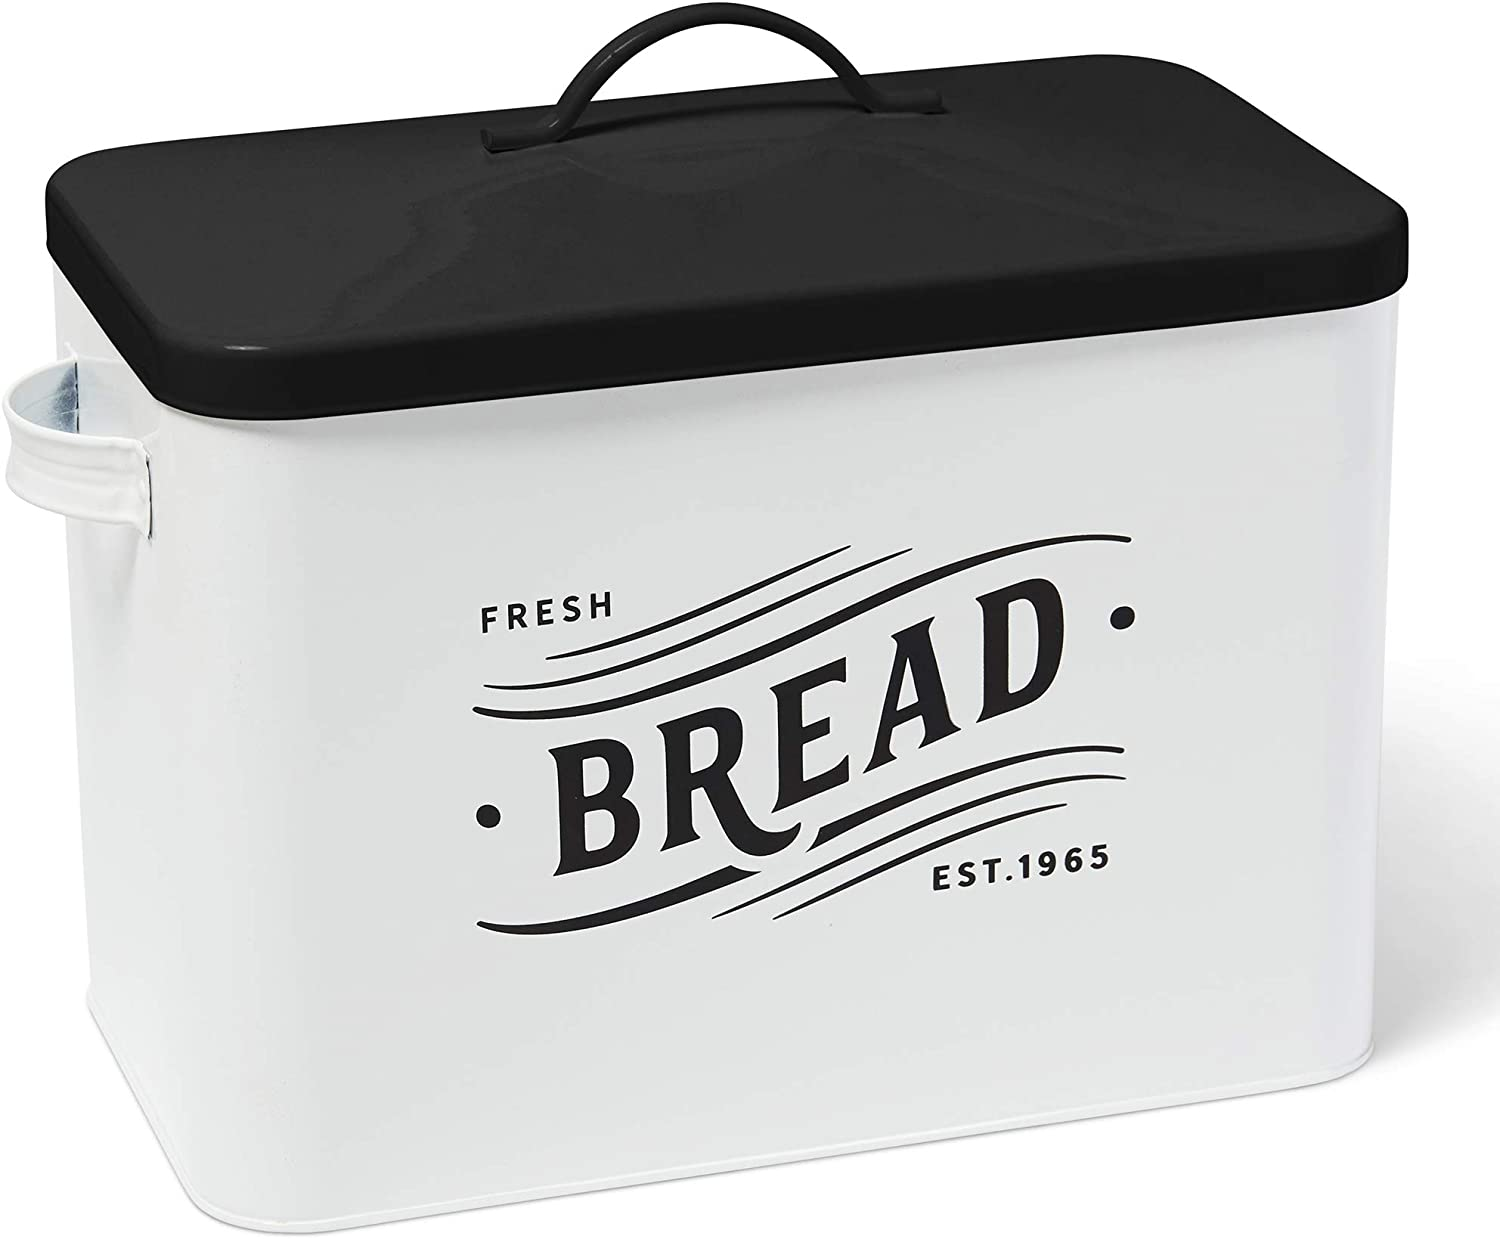 Sunsnap Extra Large Metal Bread Box for Kitchen Counter | High Capacity Space-Saving Storage Container Bin with Lid which holds 2+ Loaves - Vintage Farmhouse Lettering (White/Black)